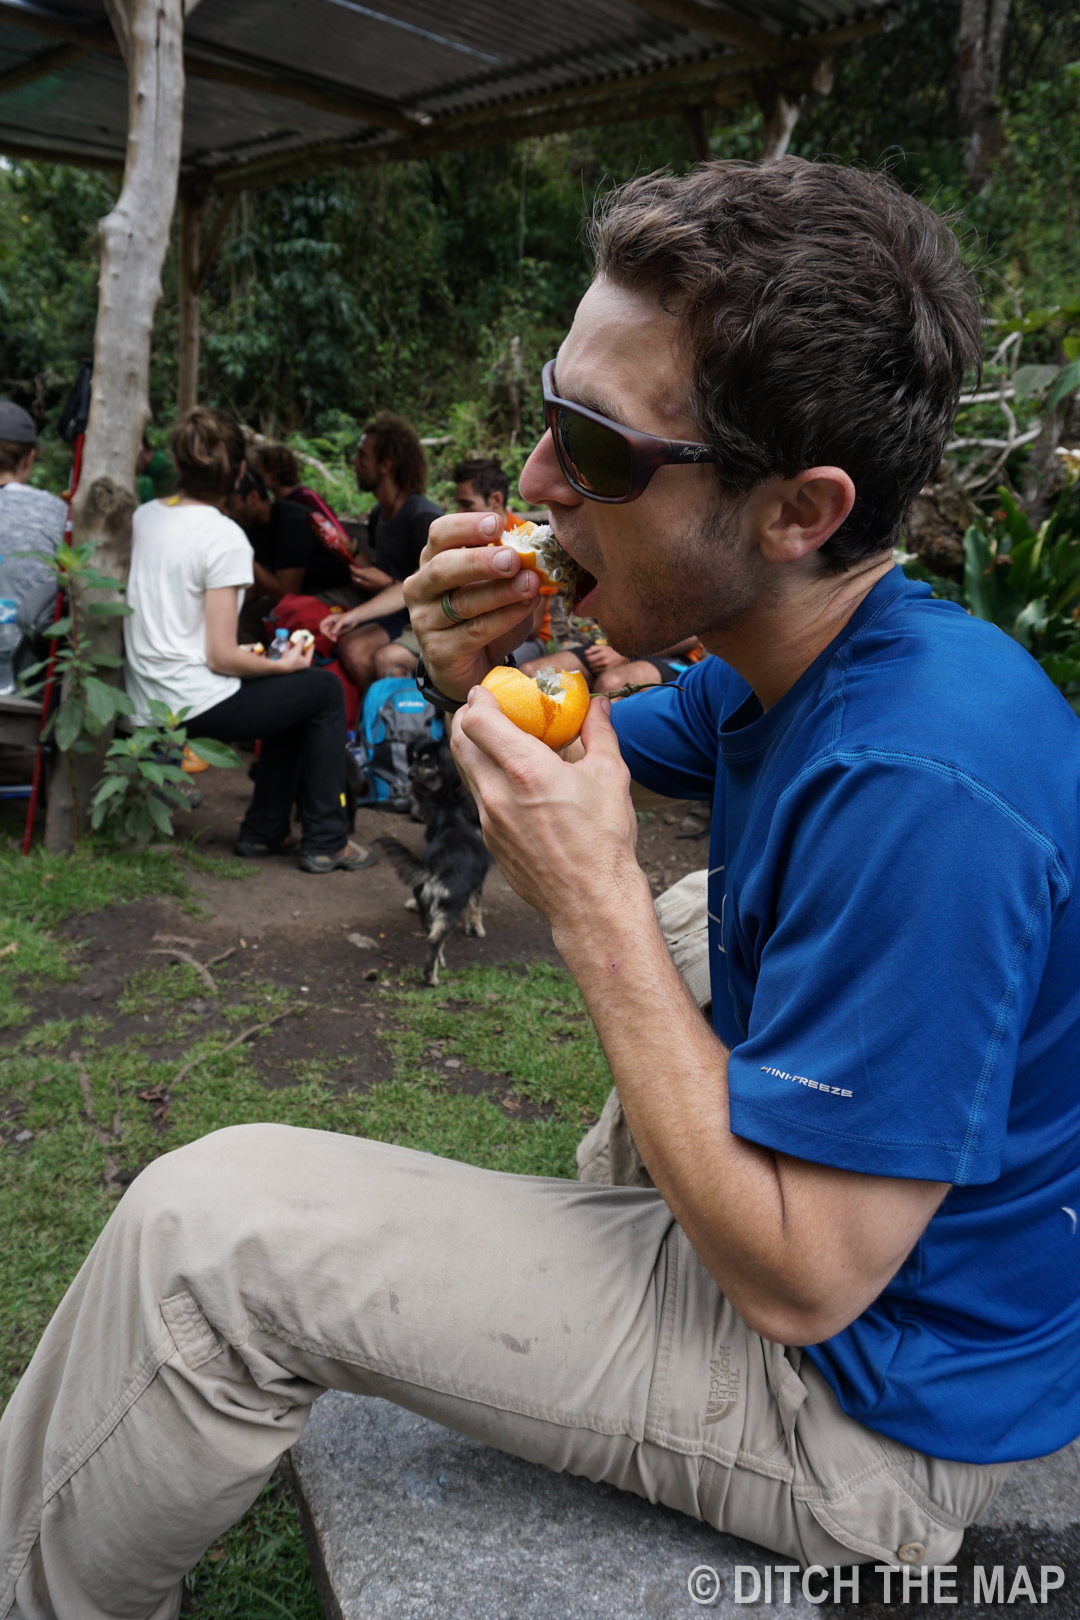 Scott eating passionfruit during the hike